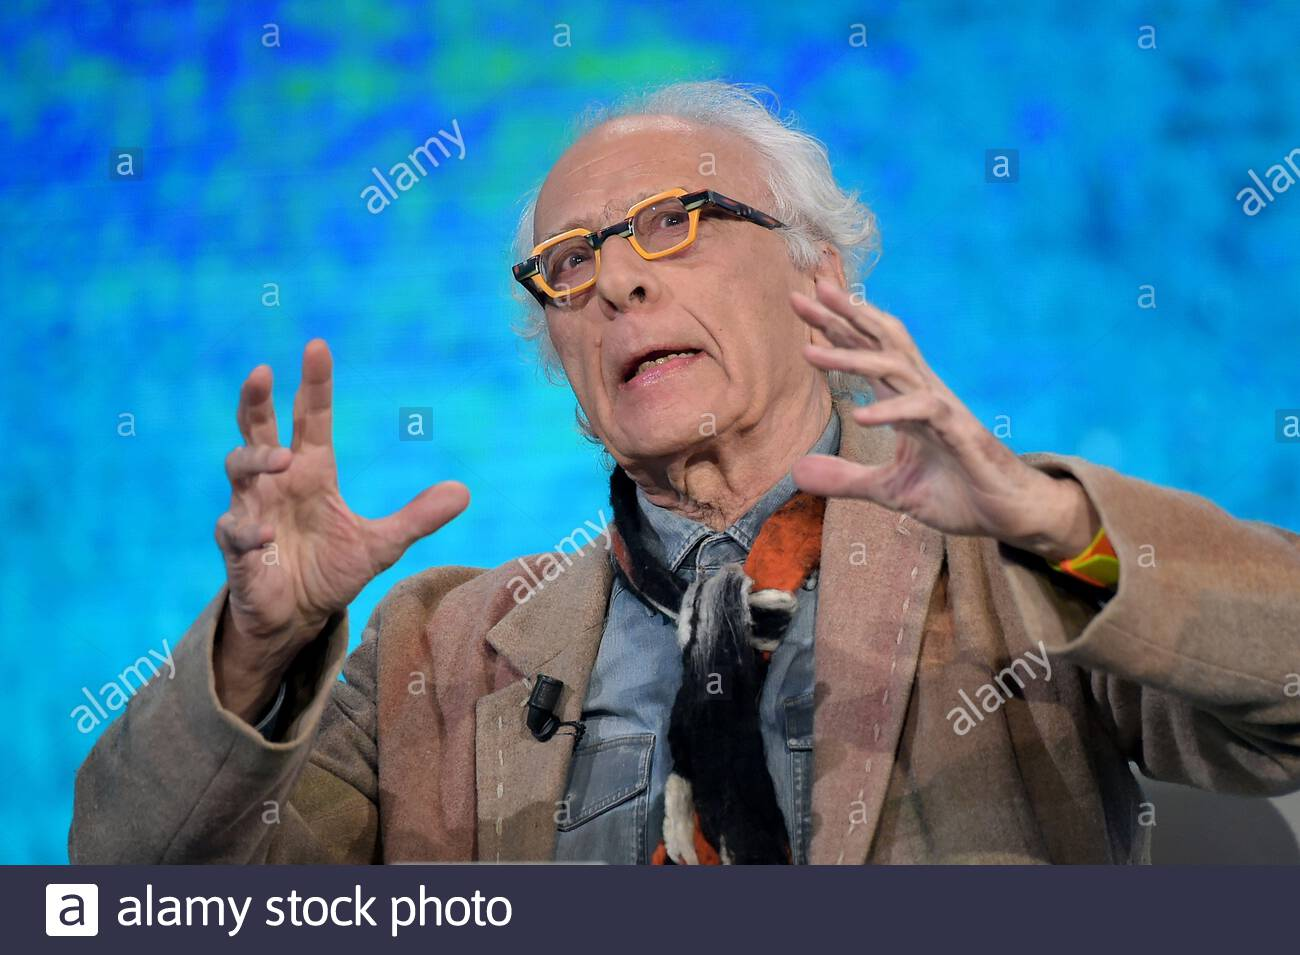 Giampiero Mughini milano, 16-06-2019 Stock Photo - Alamy